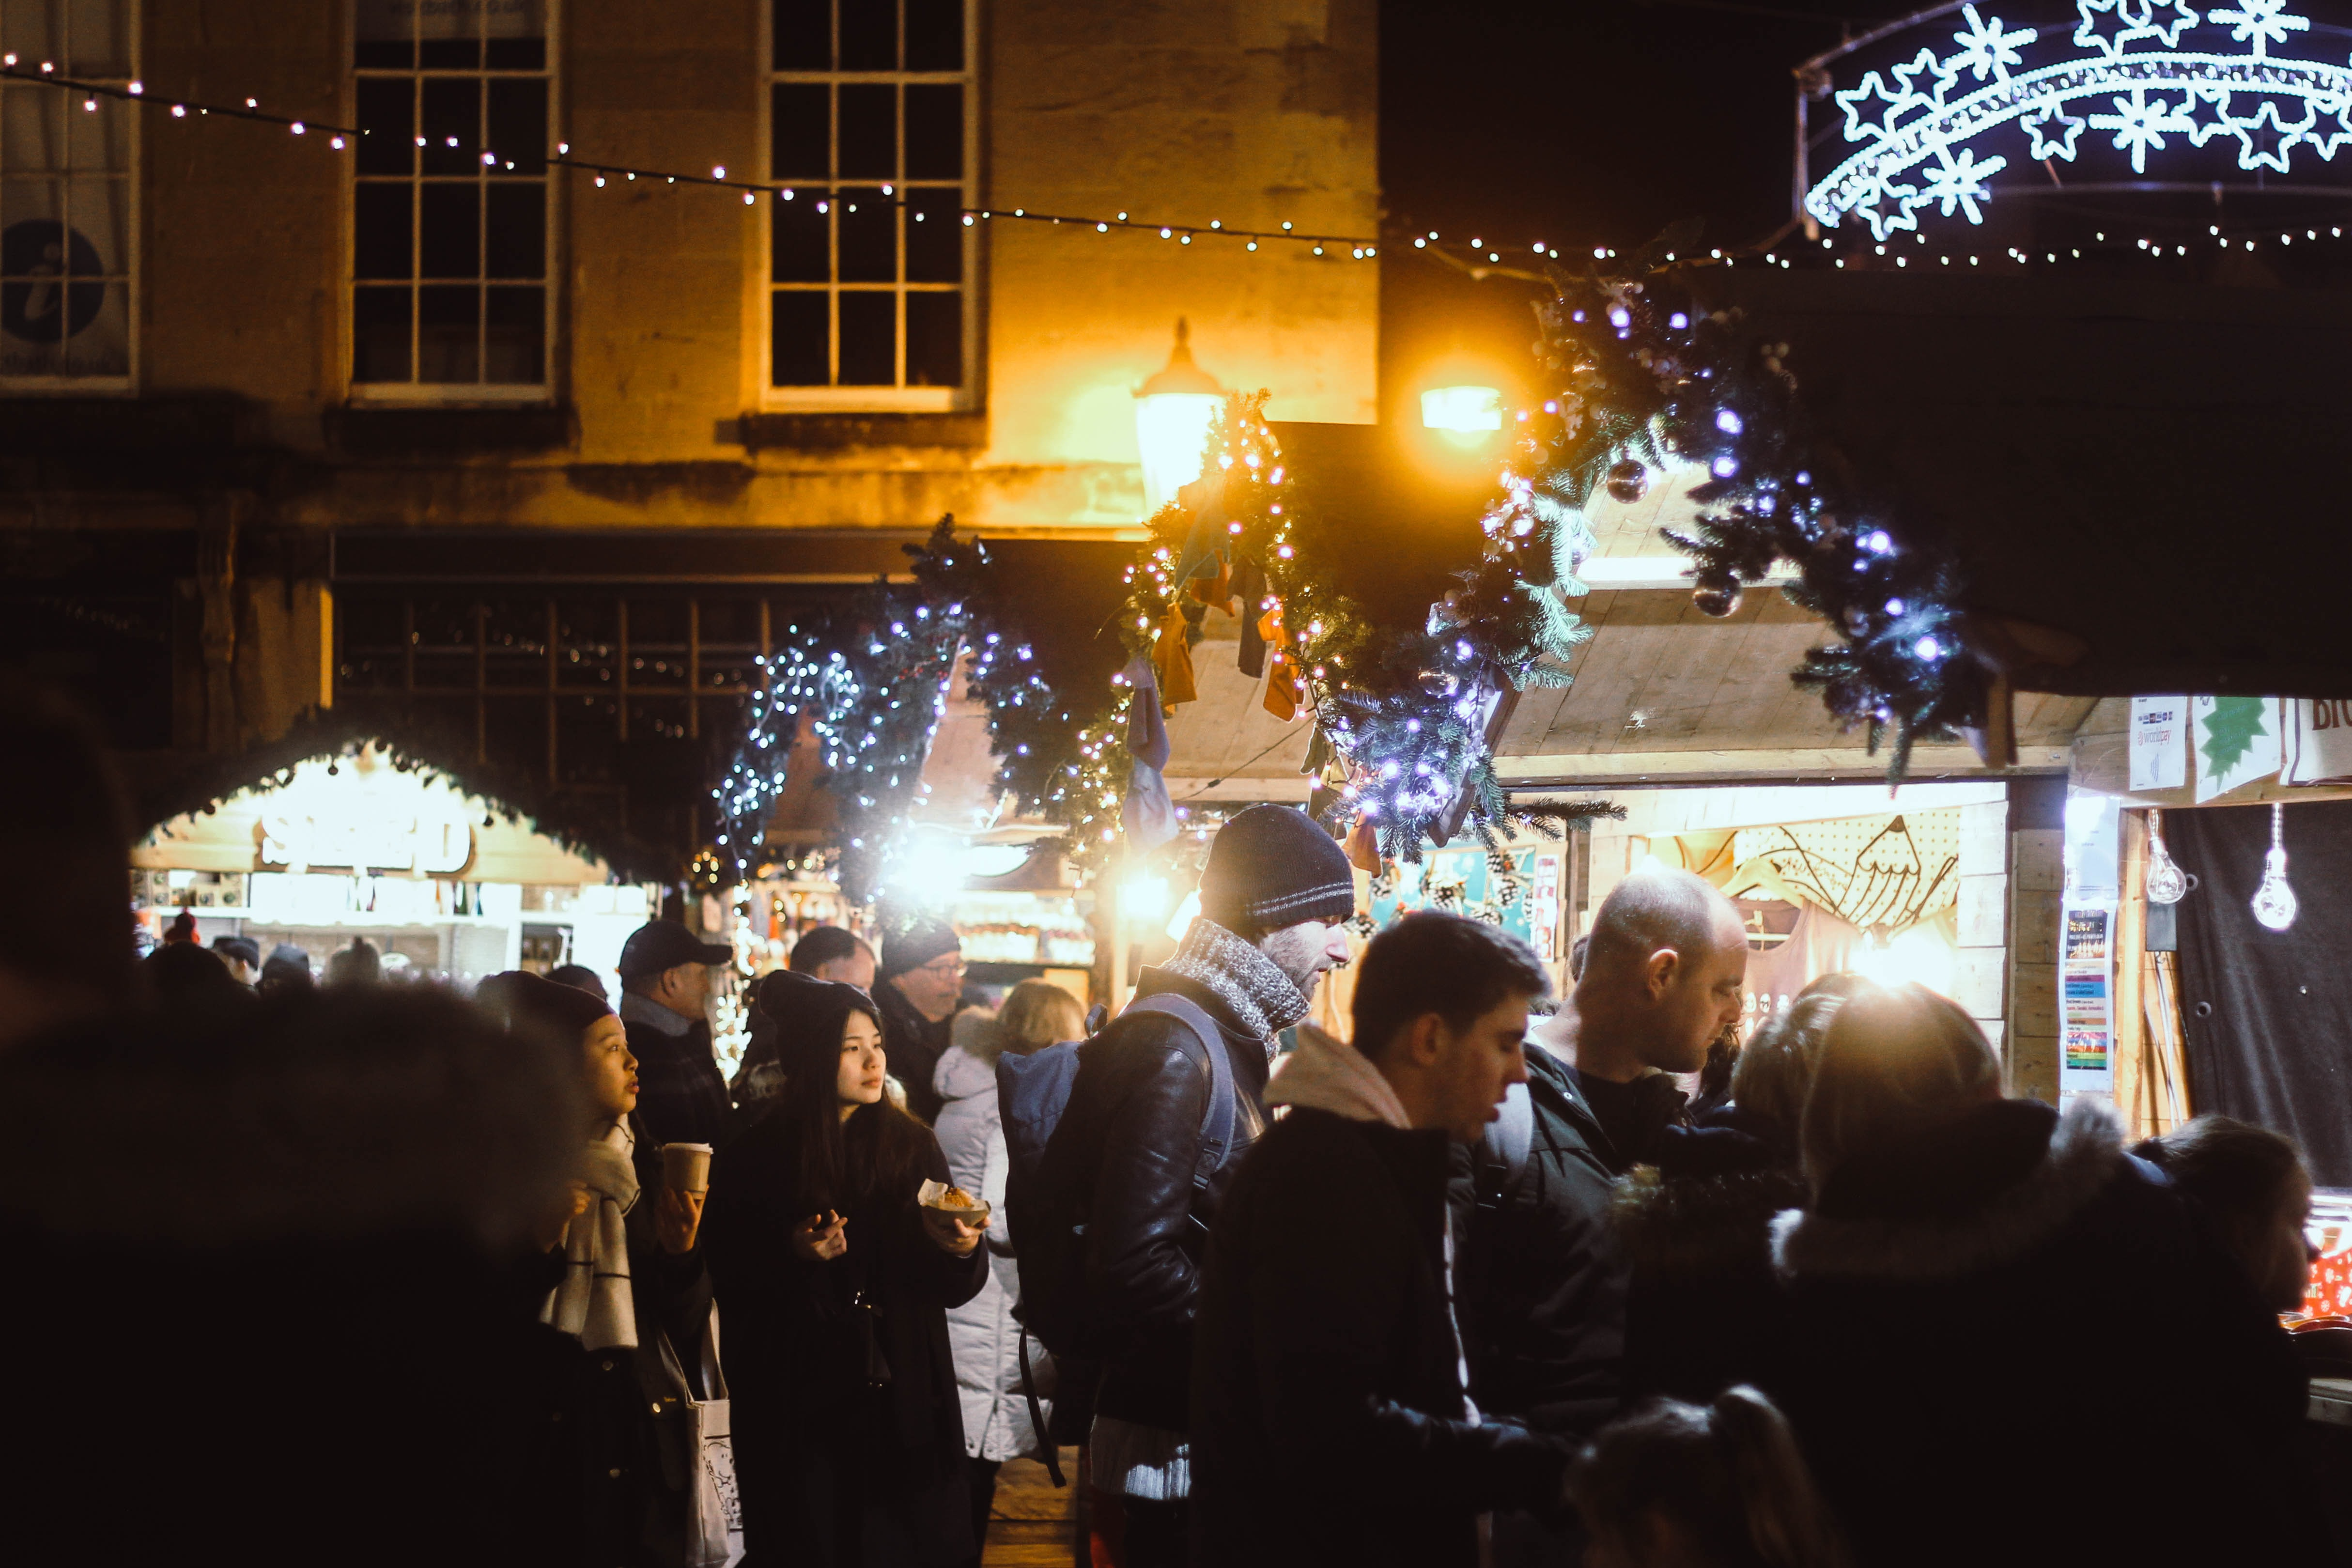 Shoppers browse the outdoor Christmas Marketing in Bath, UK at night under twinkle lights and Georgian buildings.